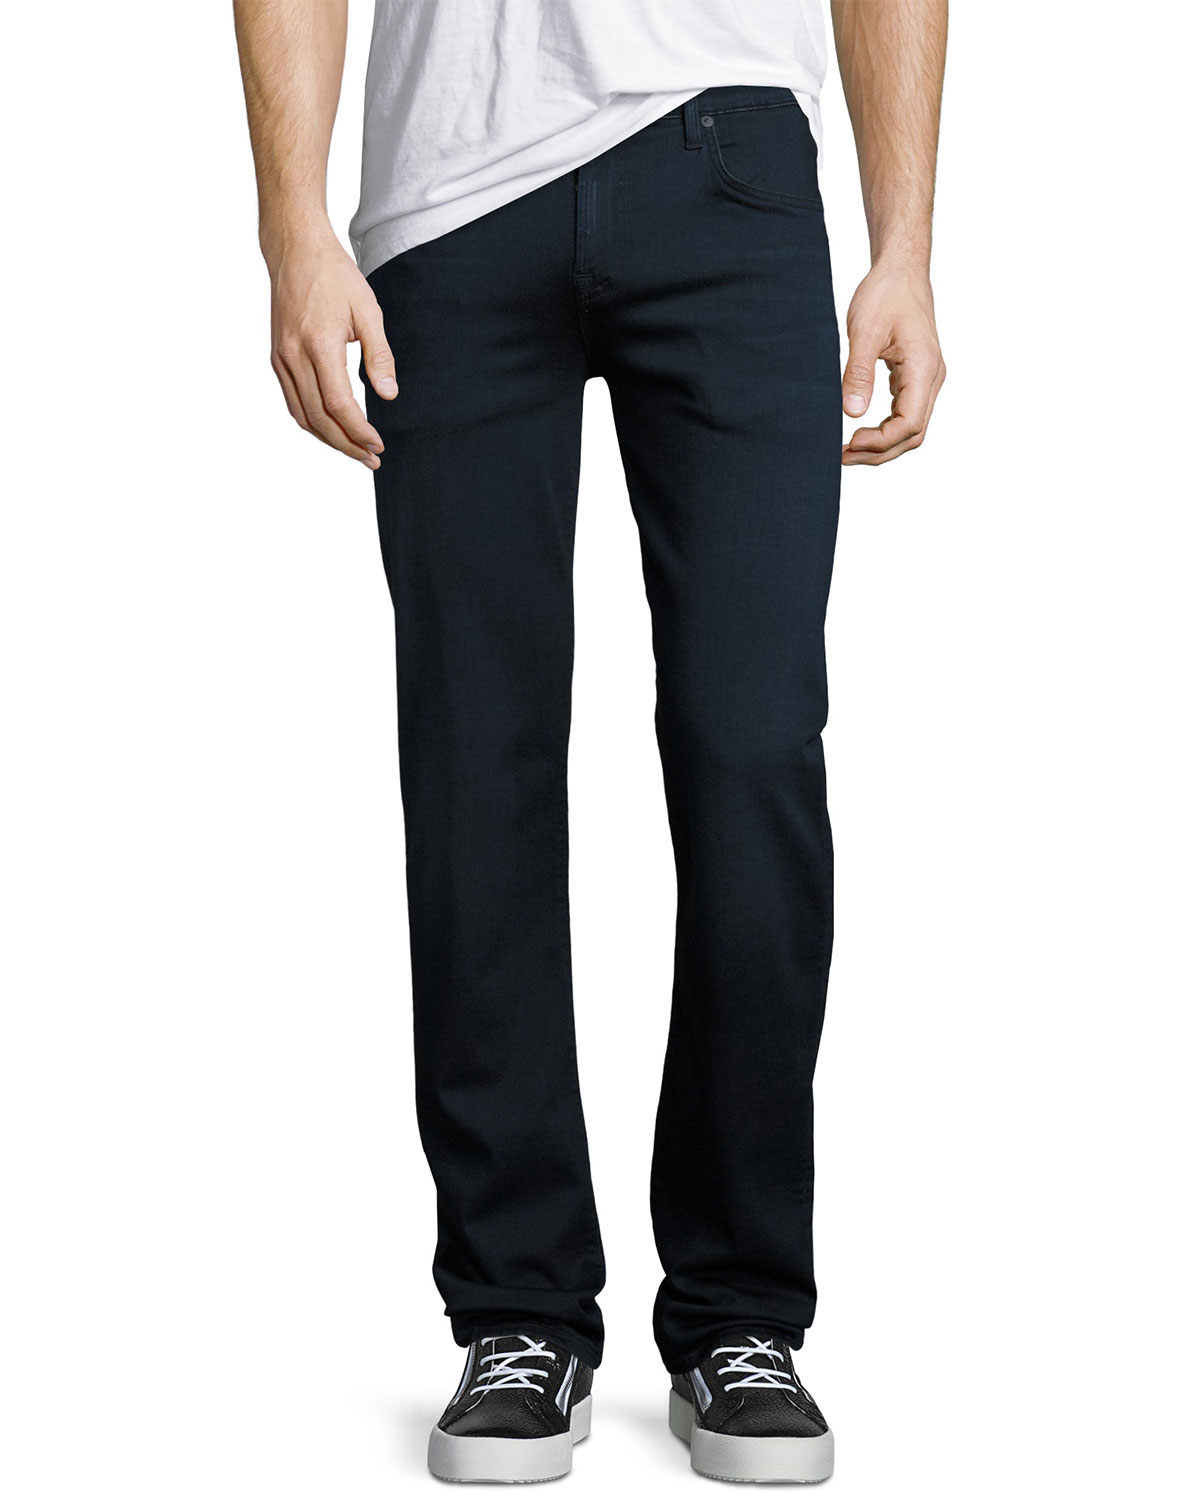 7 for all mankind Men's Luxe Sport: Slimmy Blue Jeans